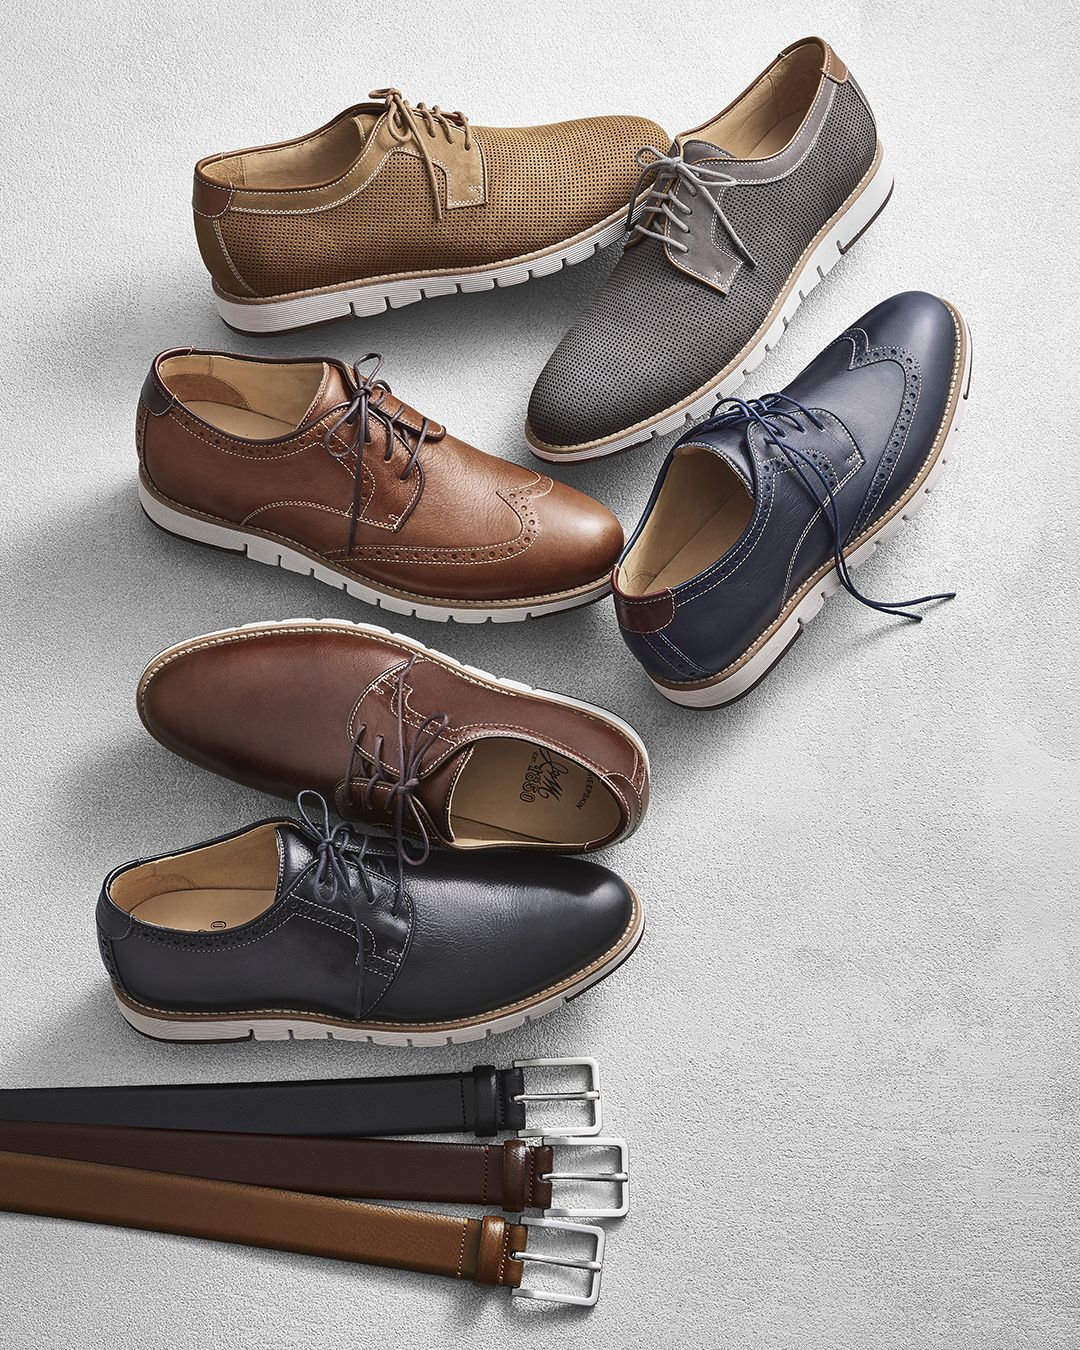 Mens casual shoes, Sneakers fashion